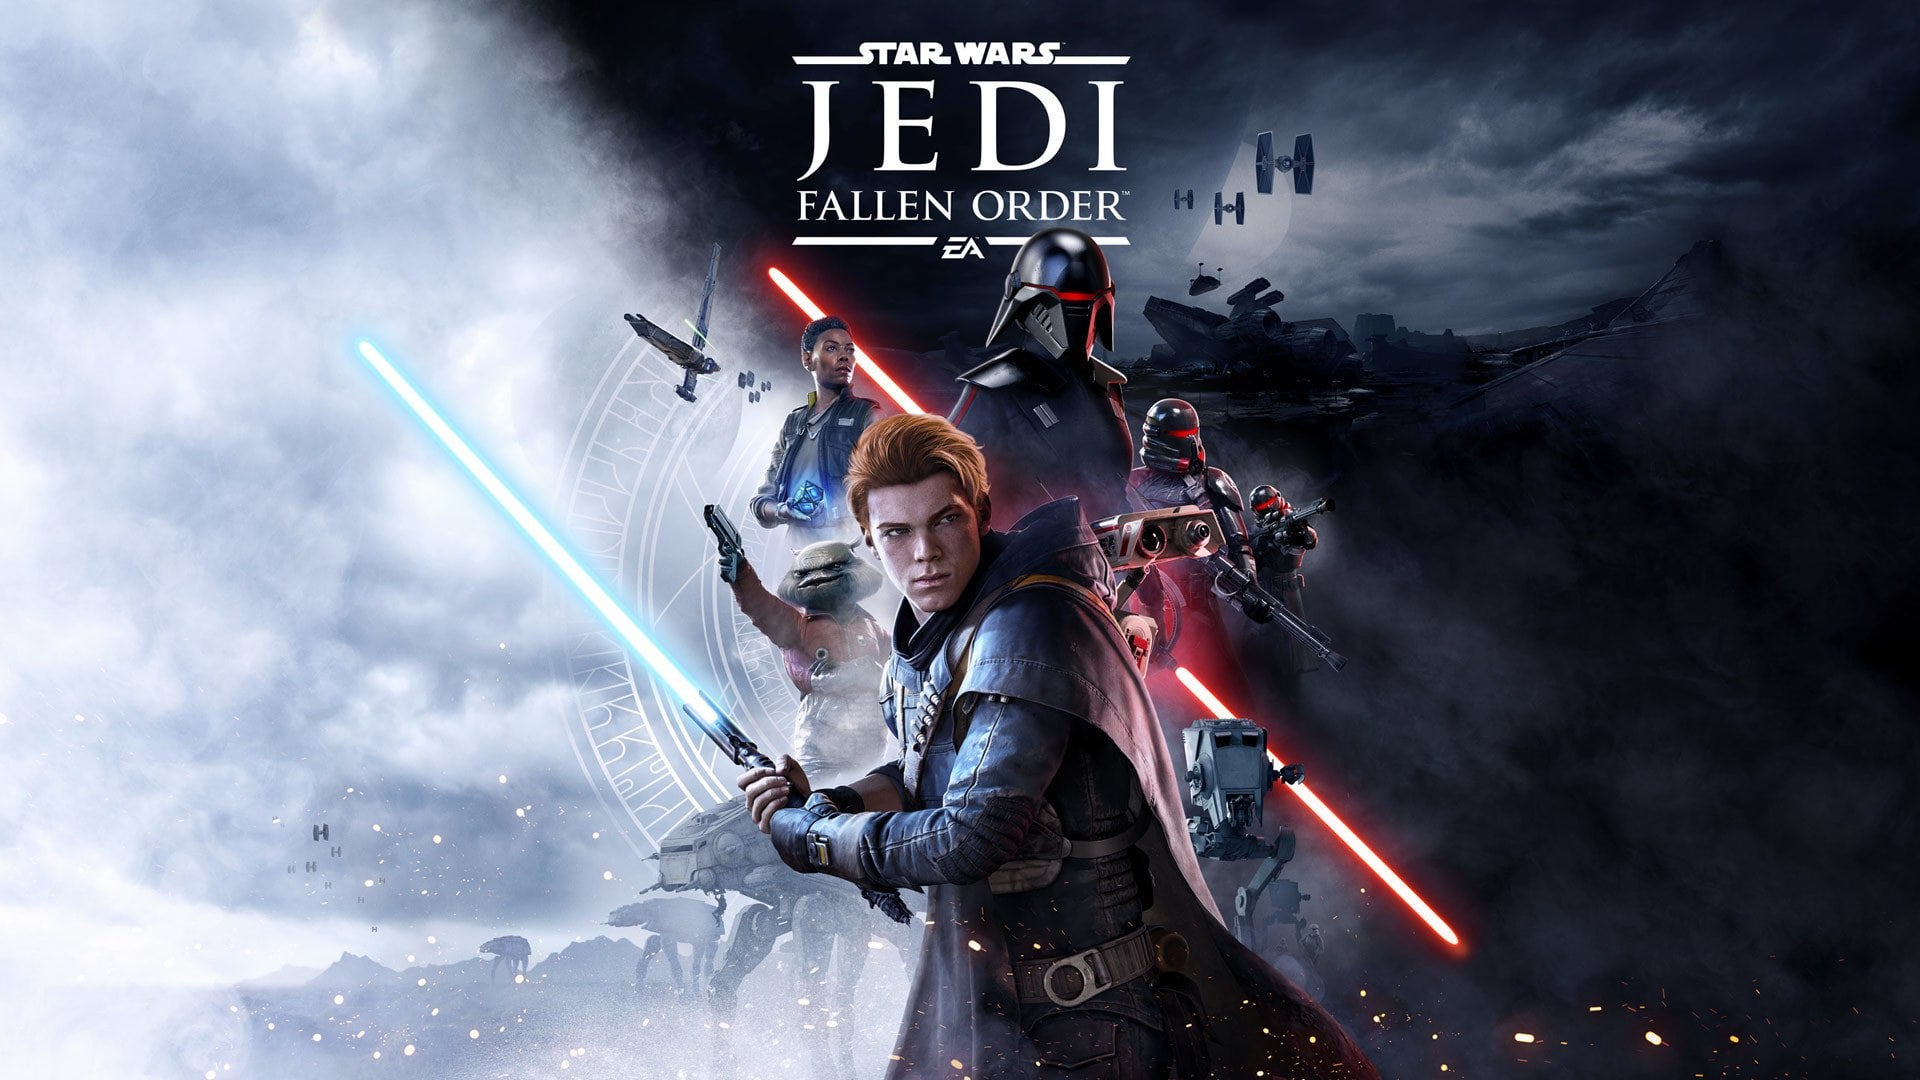 Here's Our First Look At Star Wars: Jedi Fallen Order Gameplay